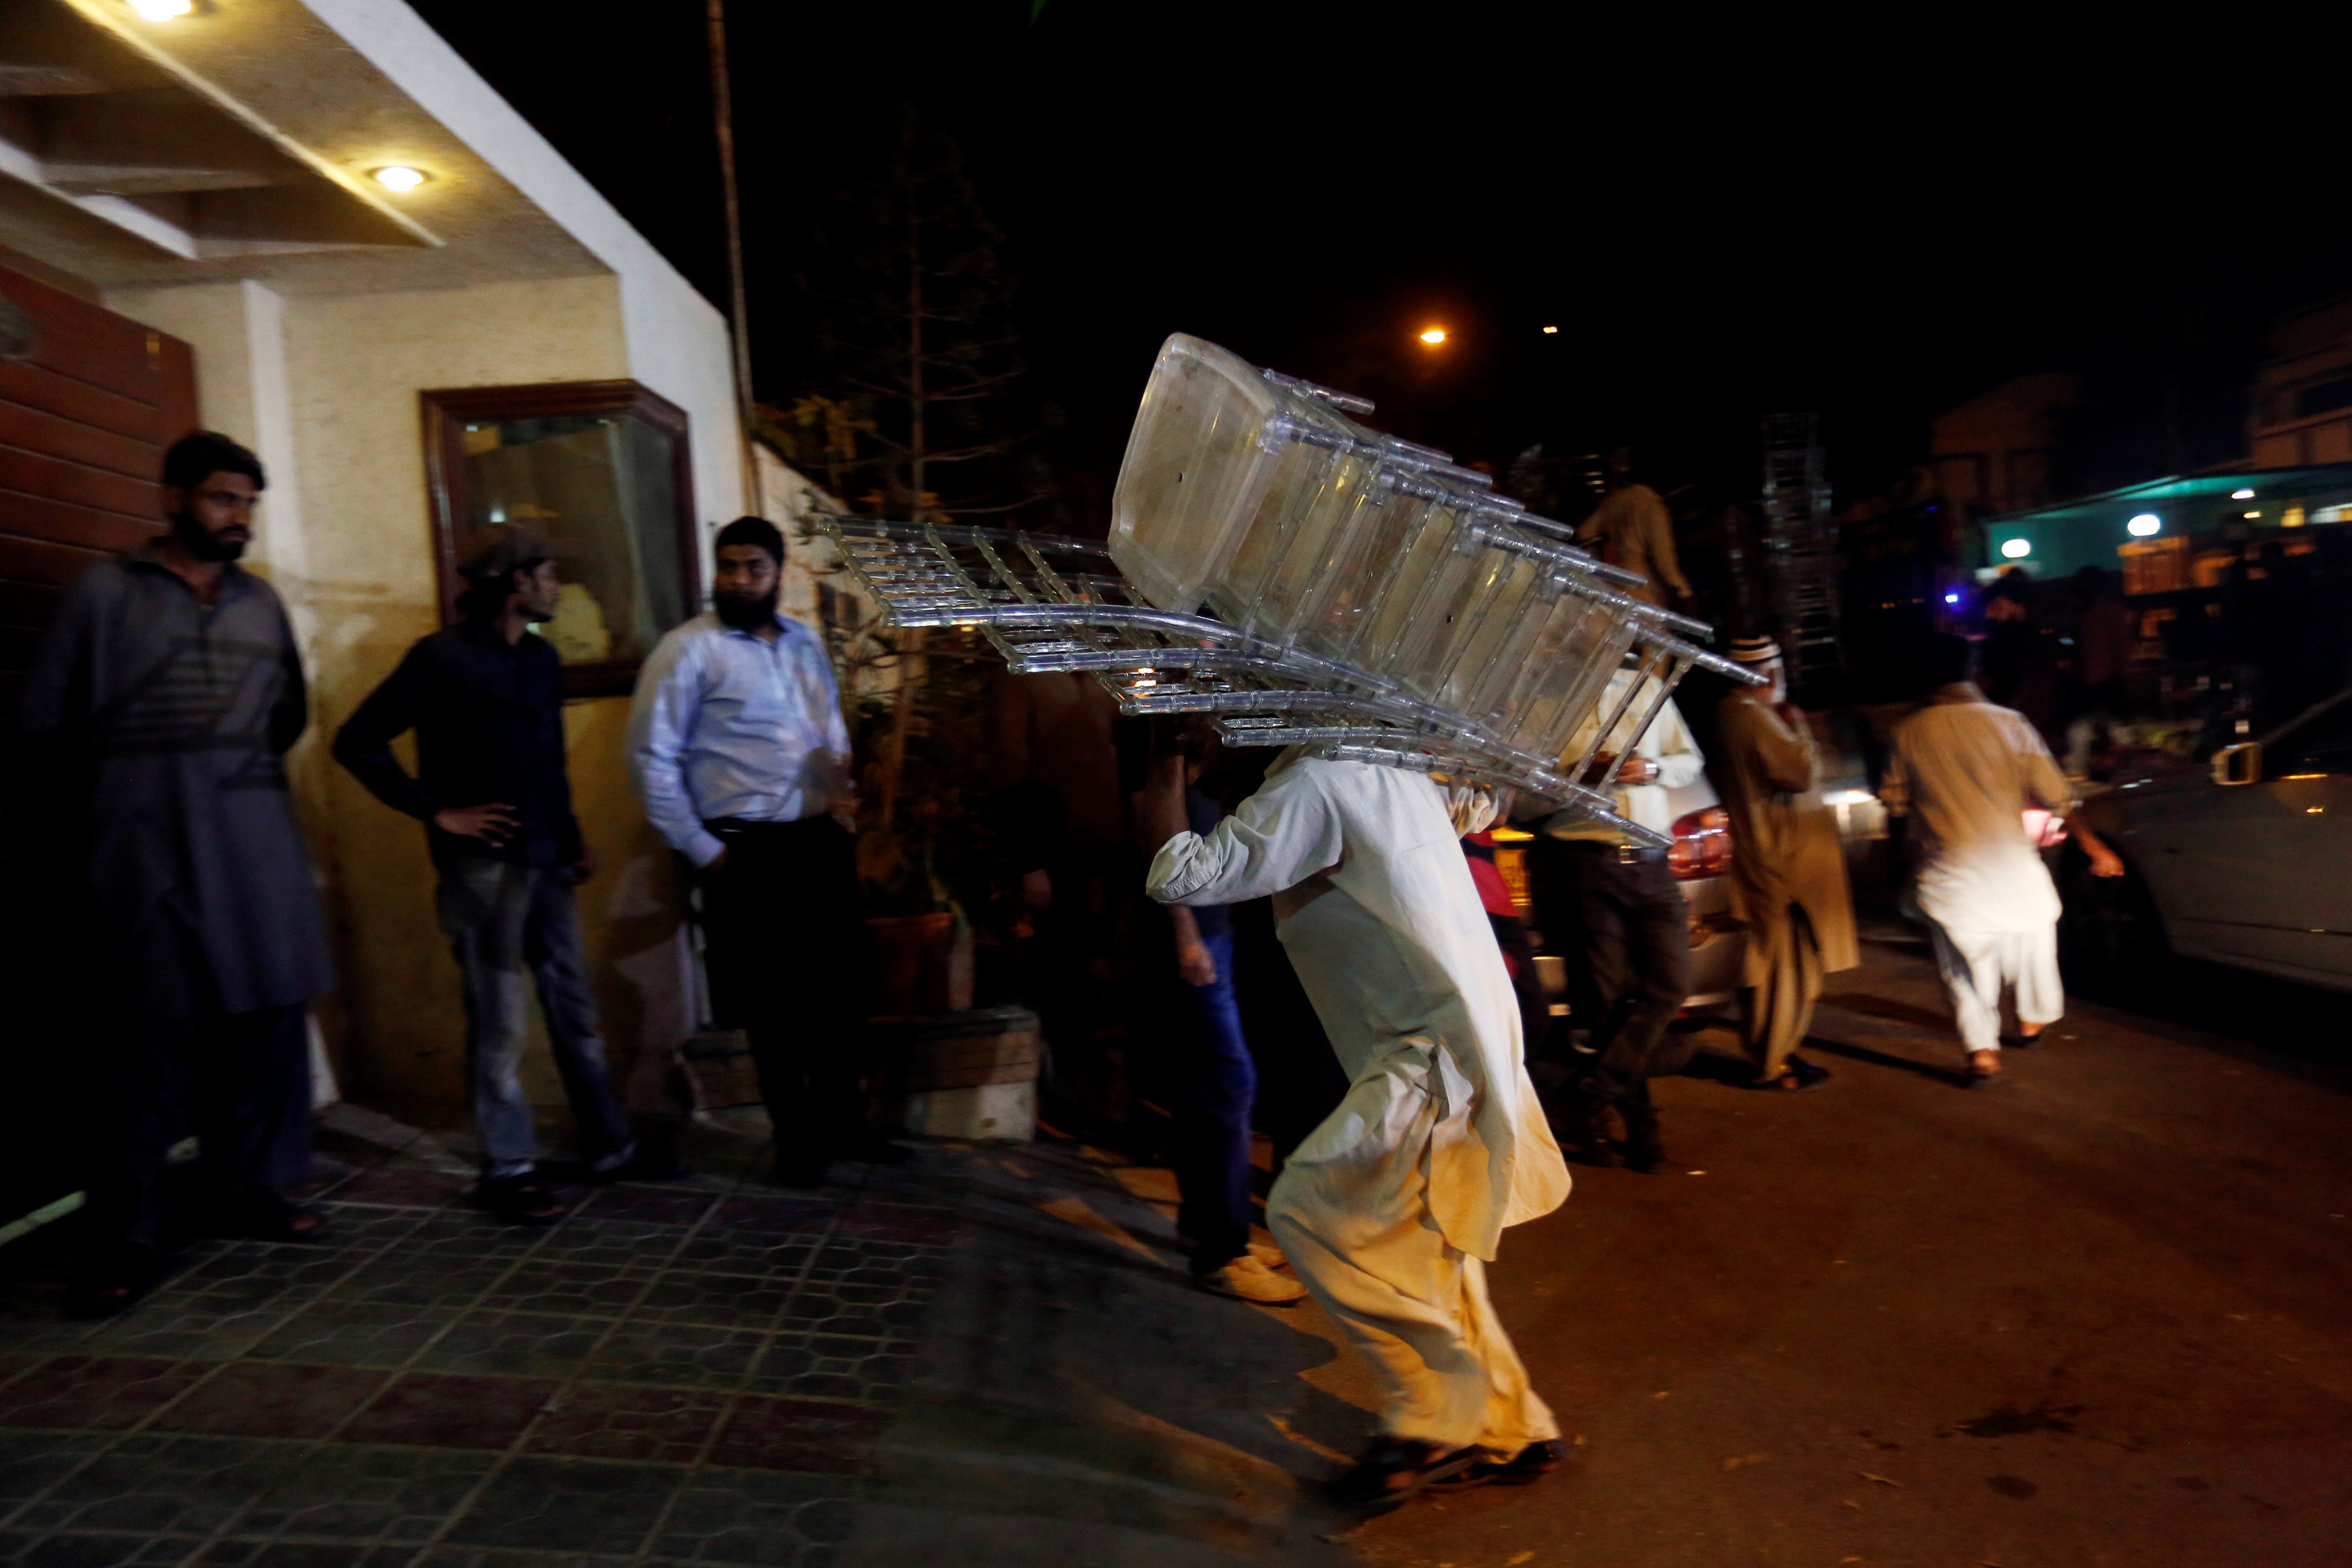 A worker carries in chairs as relatives gather outside the residence of Junaid Jamshed, pop star turned evangelical Muslim cleric, in Karachi, Pakistan December 7, 2016. REUTERS/Akhtar Soomro